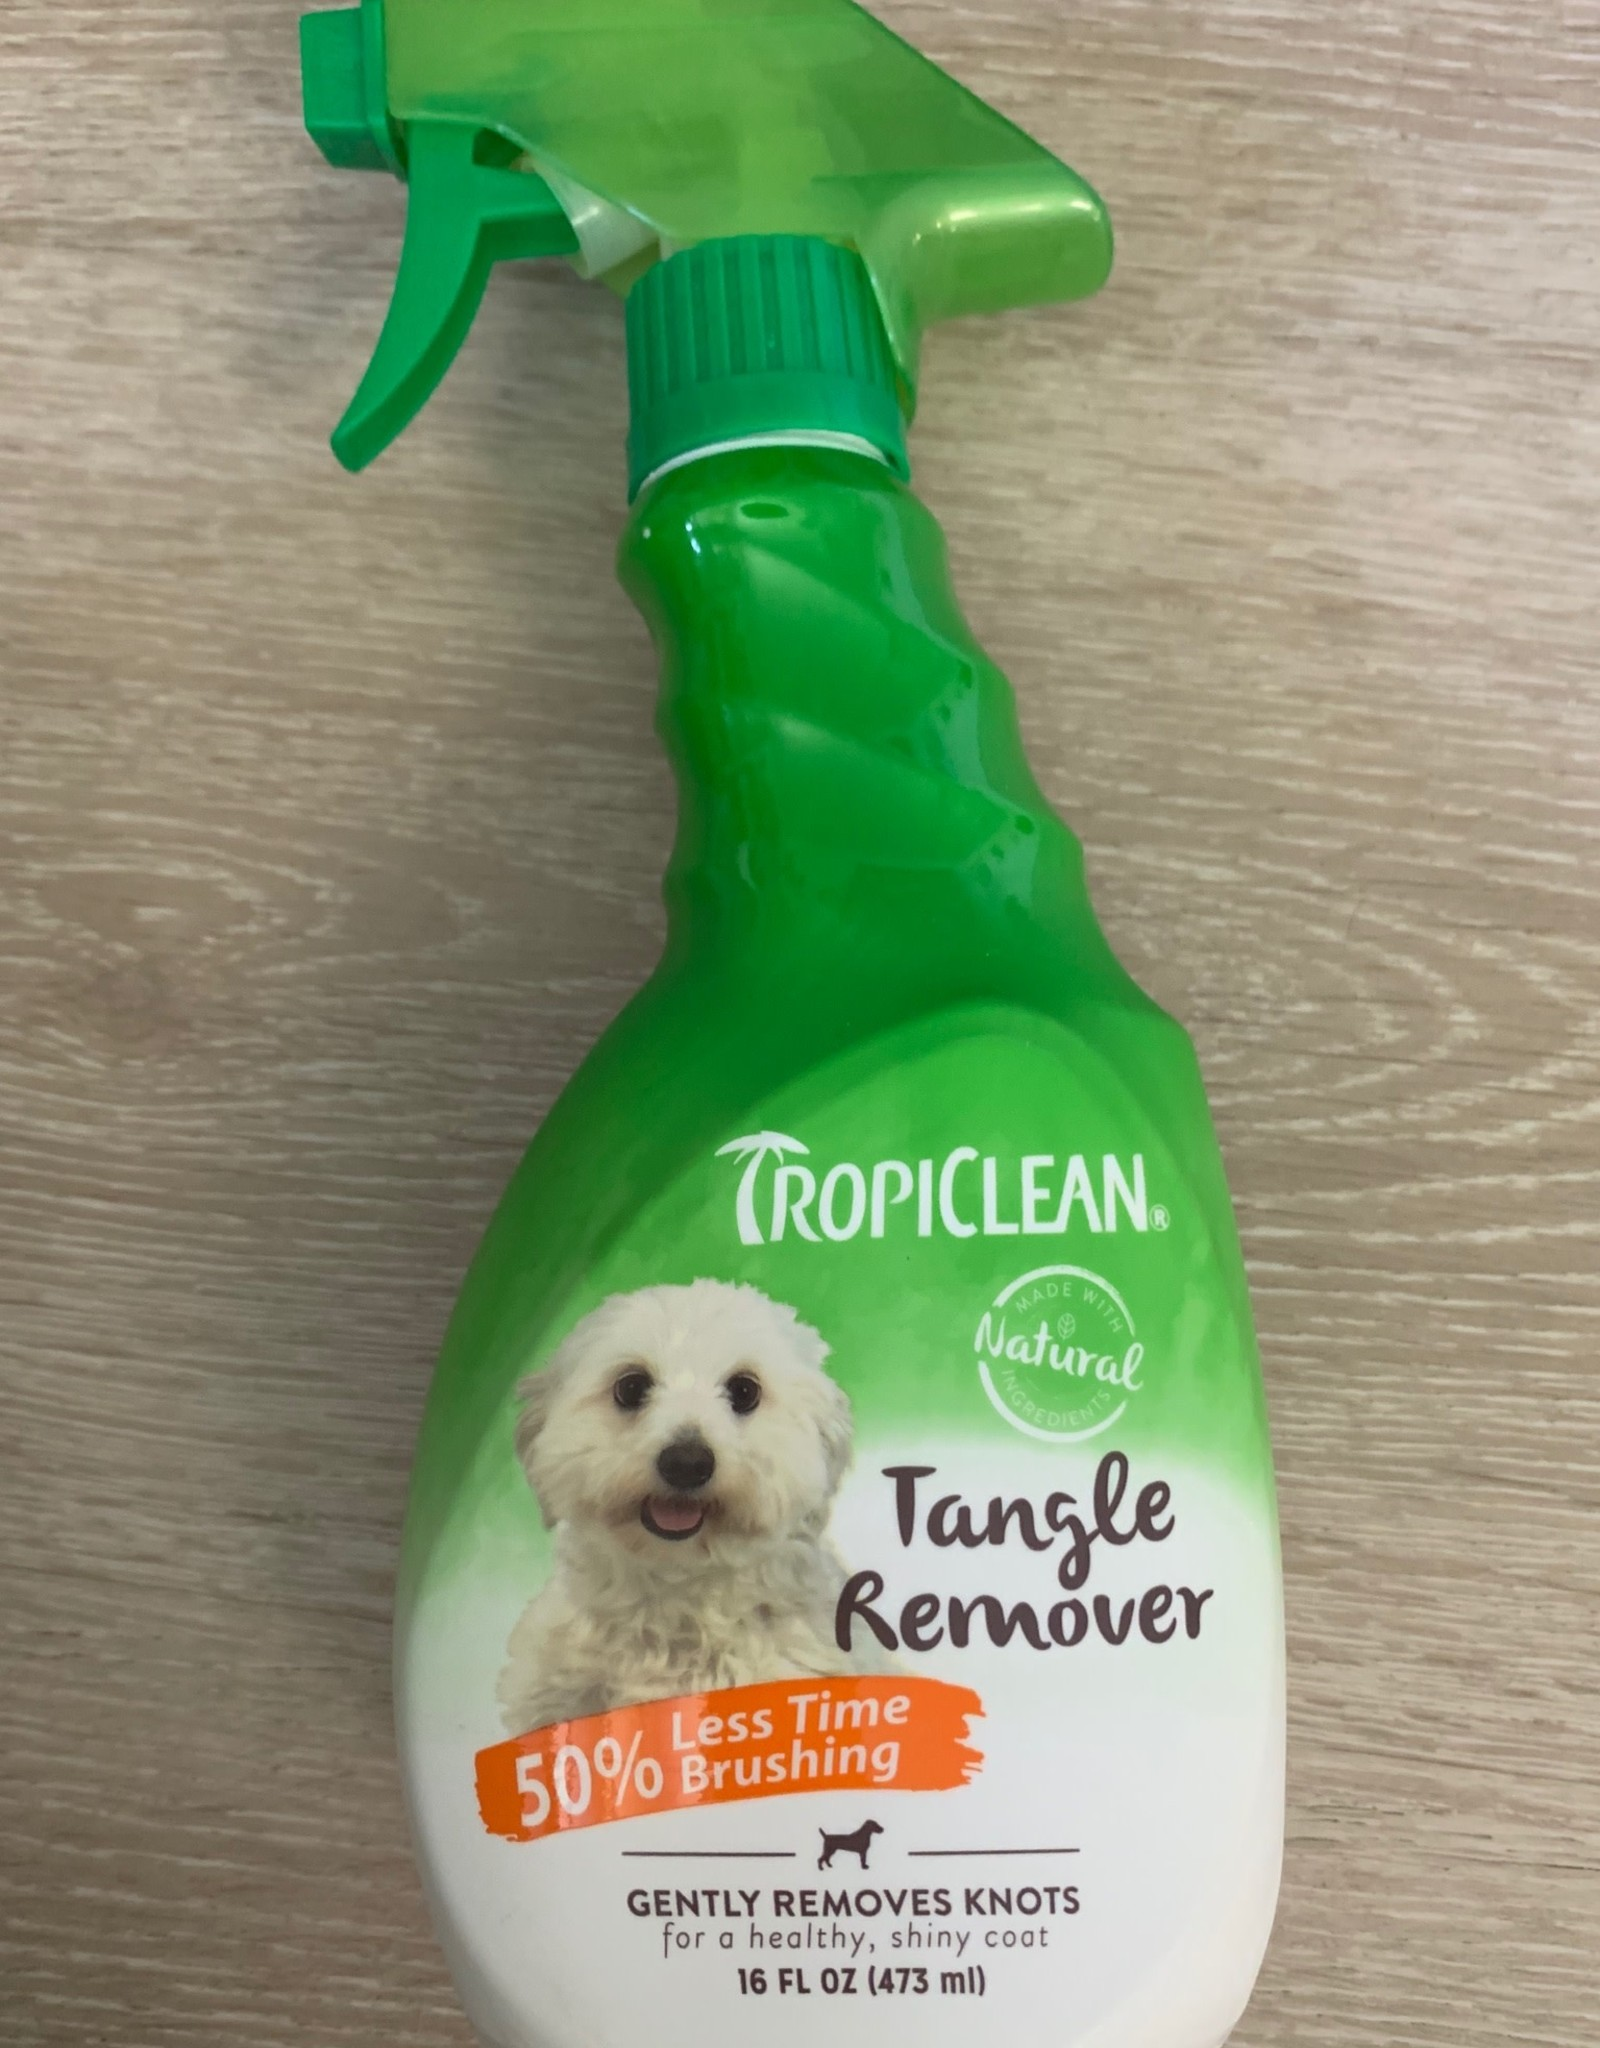 Tropiclean Natural Tangle Remover